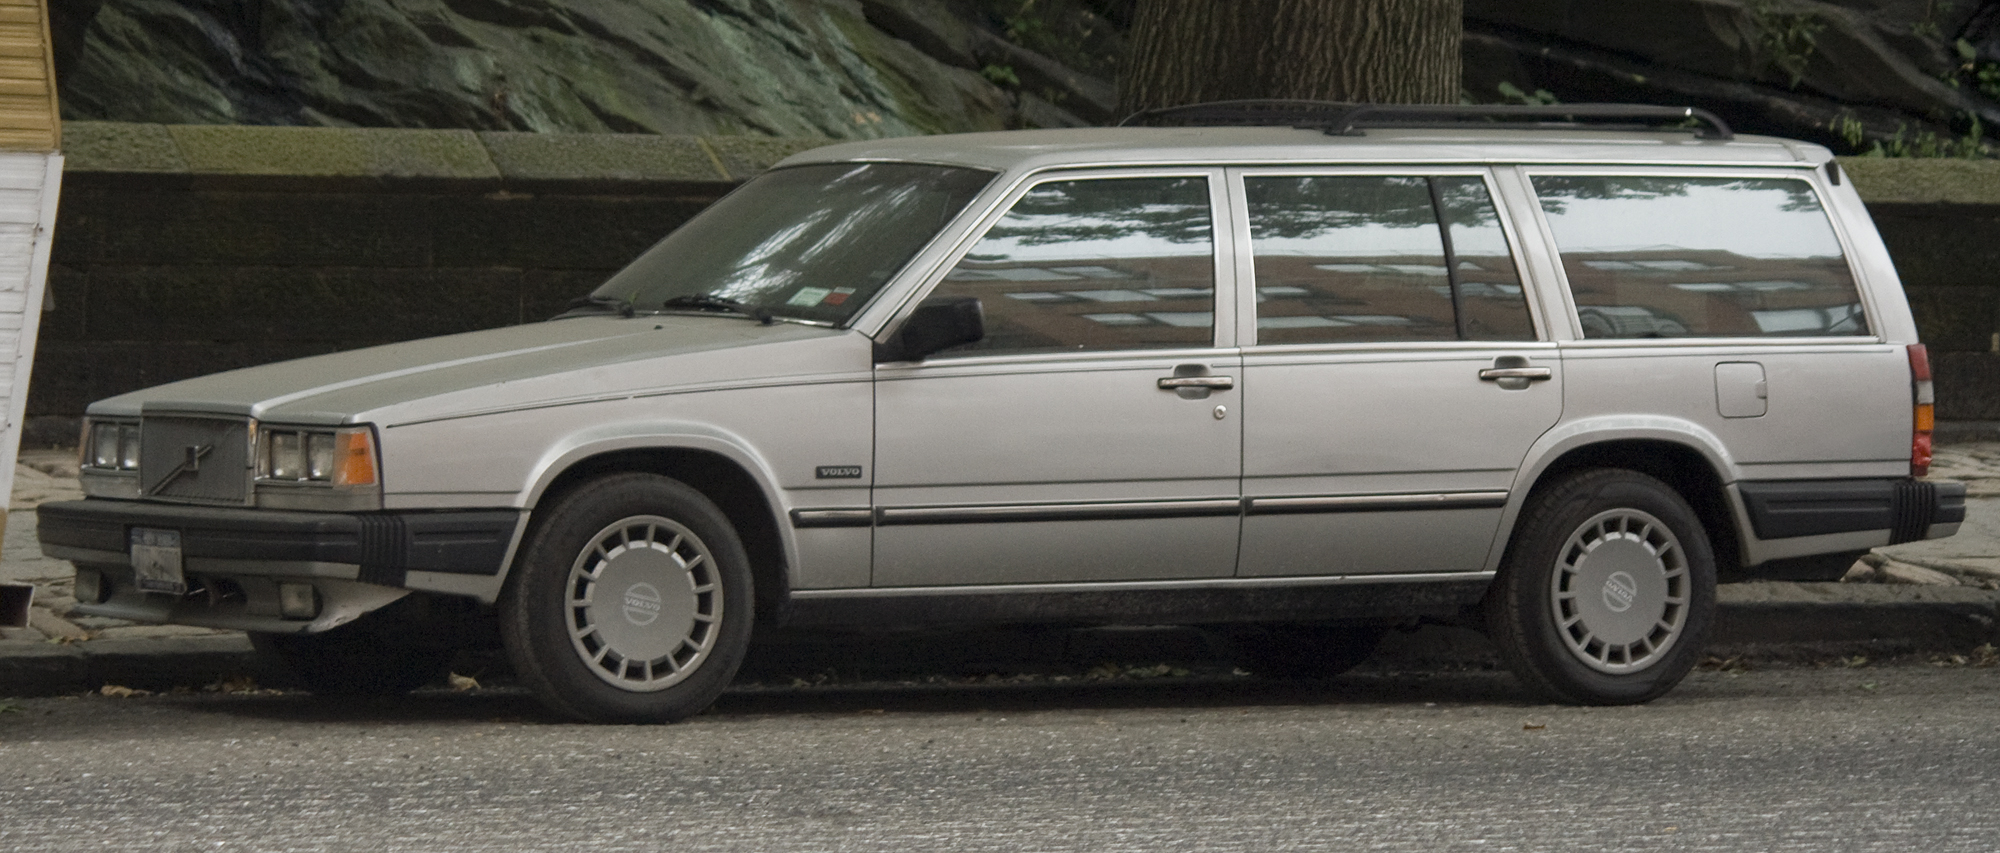 File:1989 Volvo 745 front left (NYC).jpg